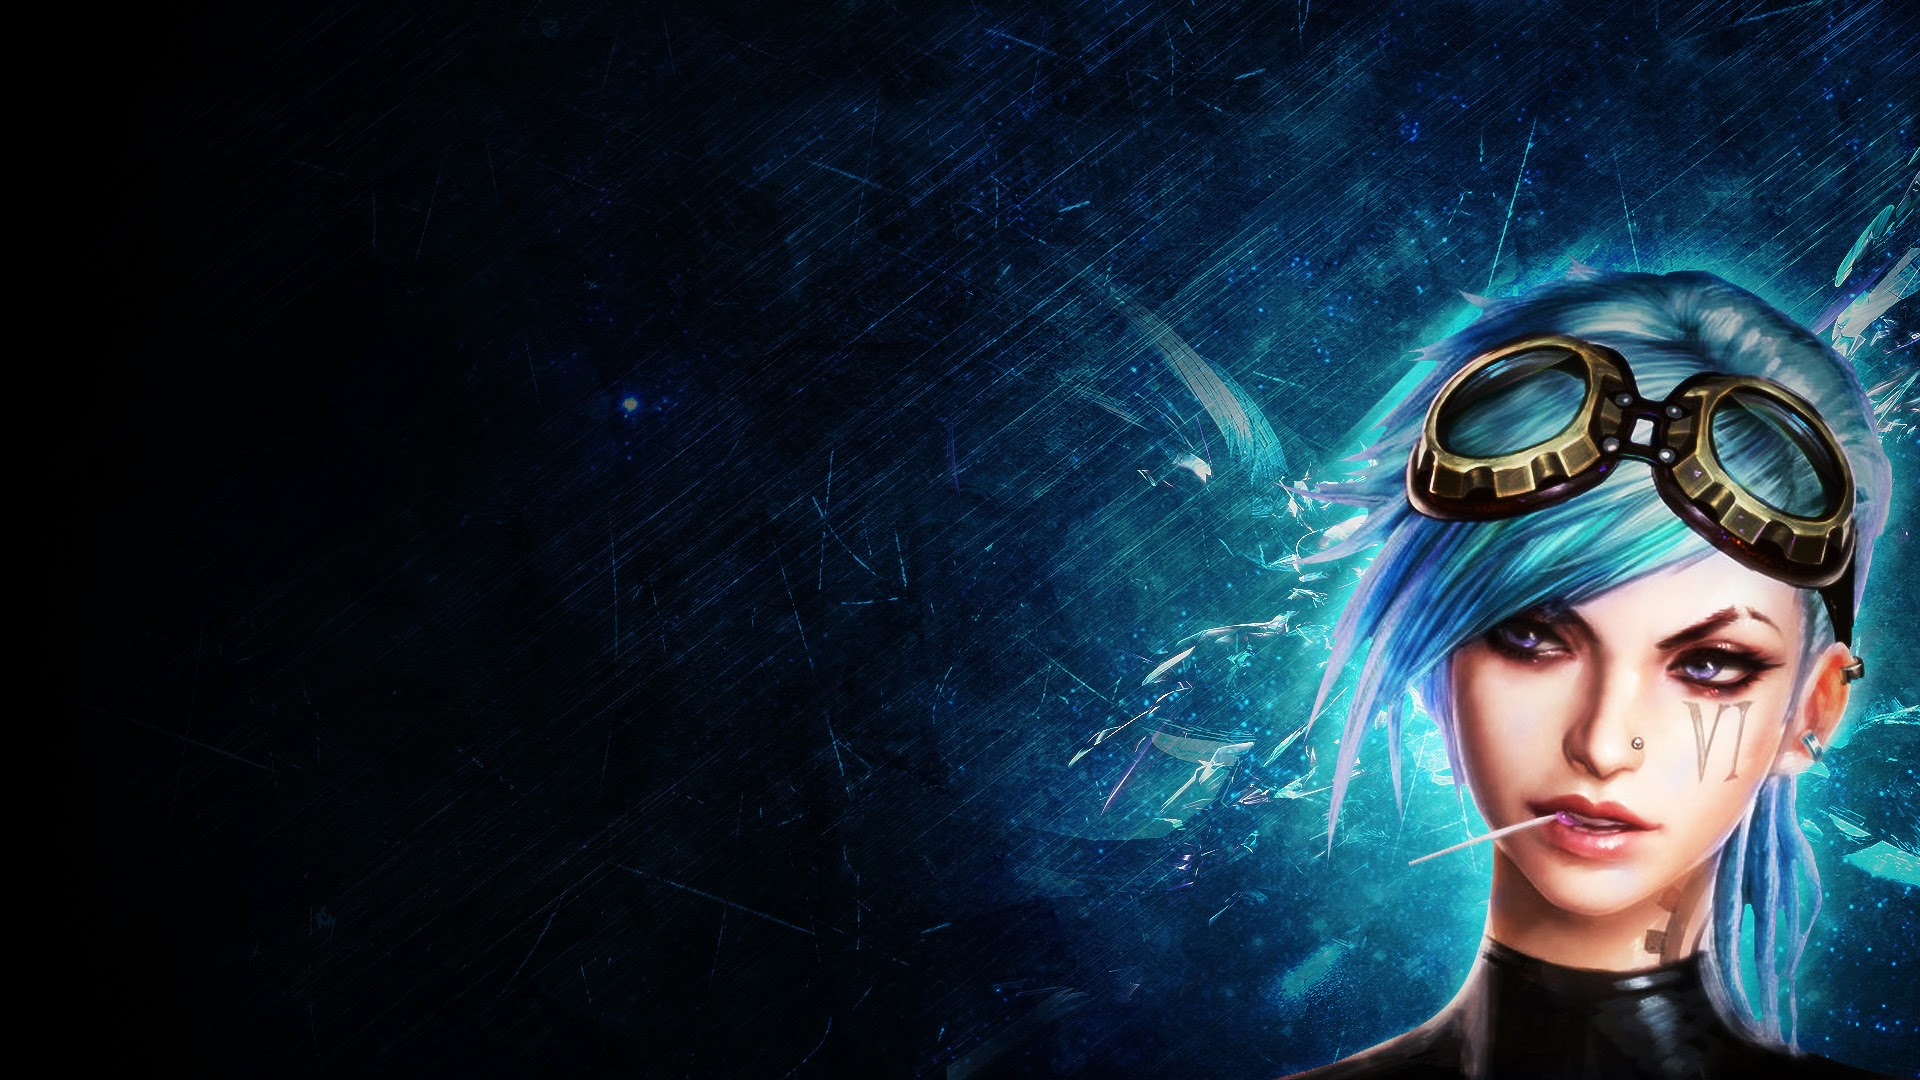 Free Download Vi League Of Legends Lol Girl Champion Hd Wallpaper